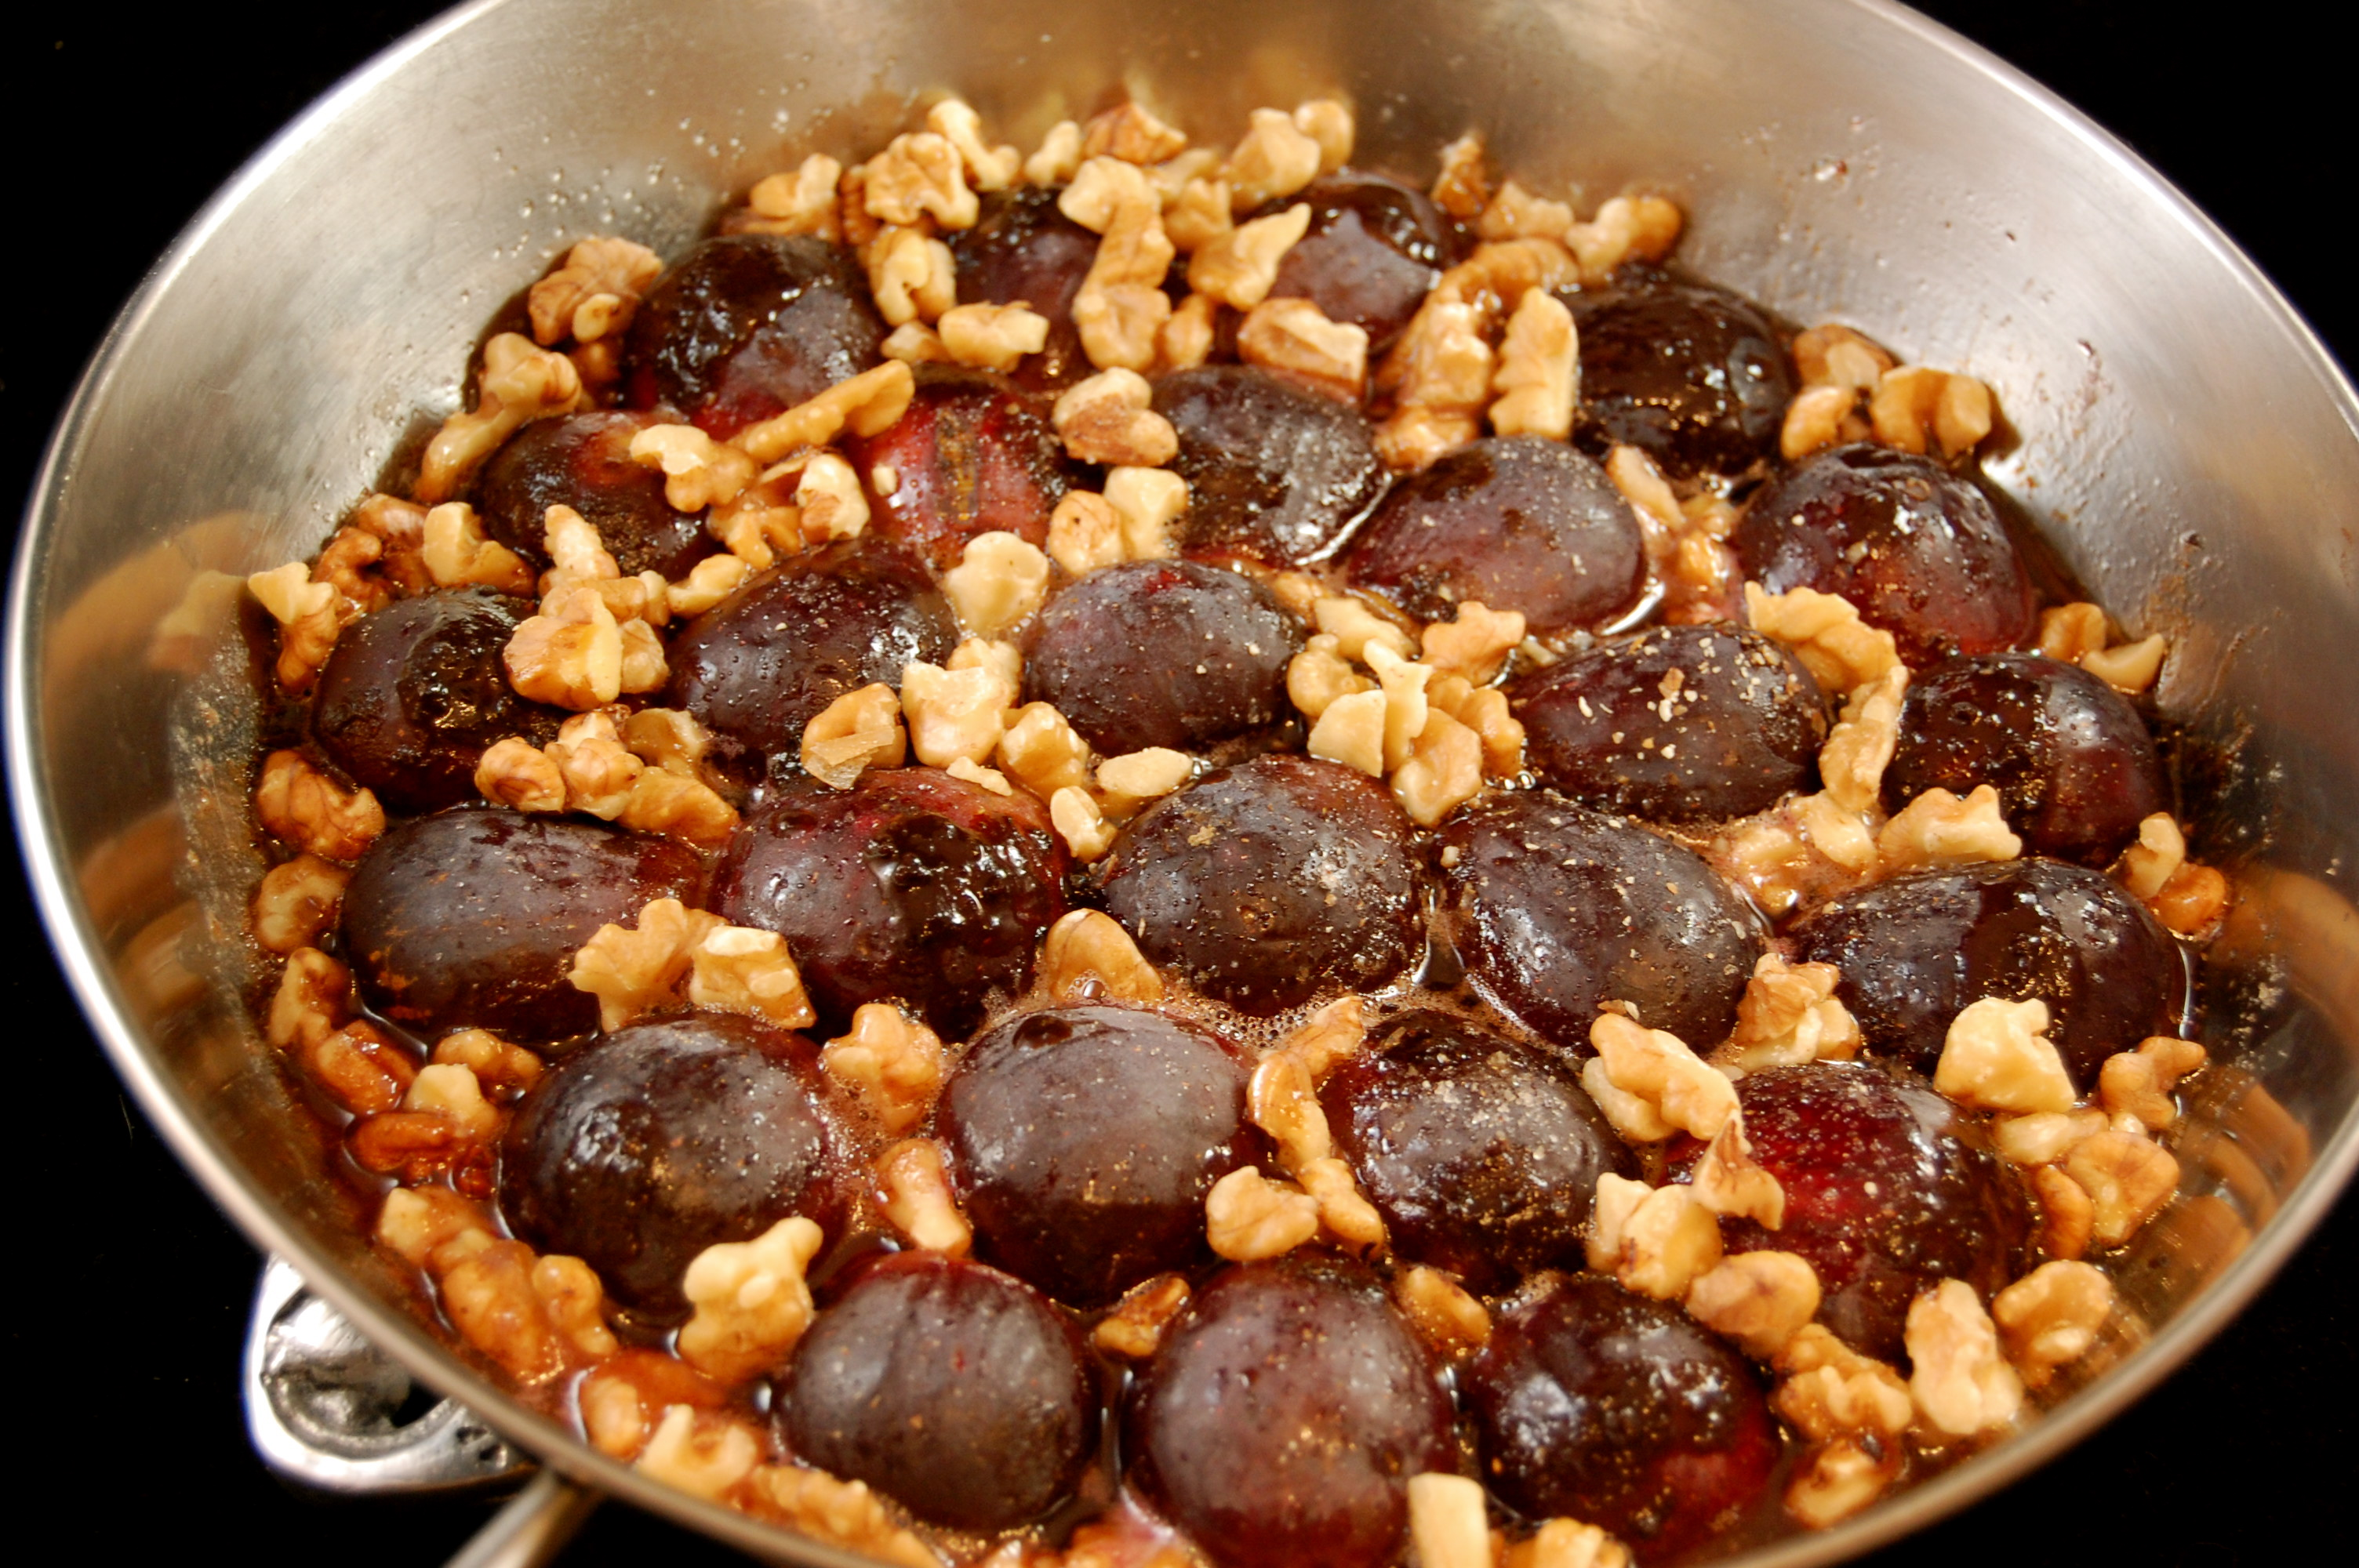 figs in pan